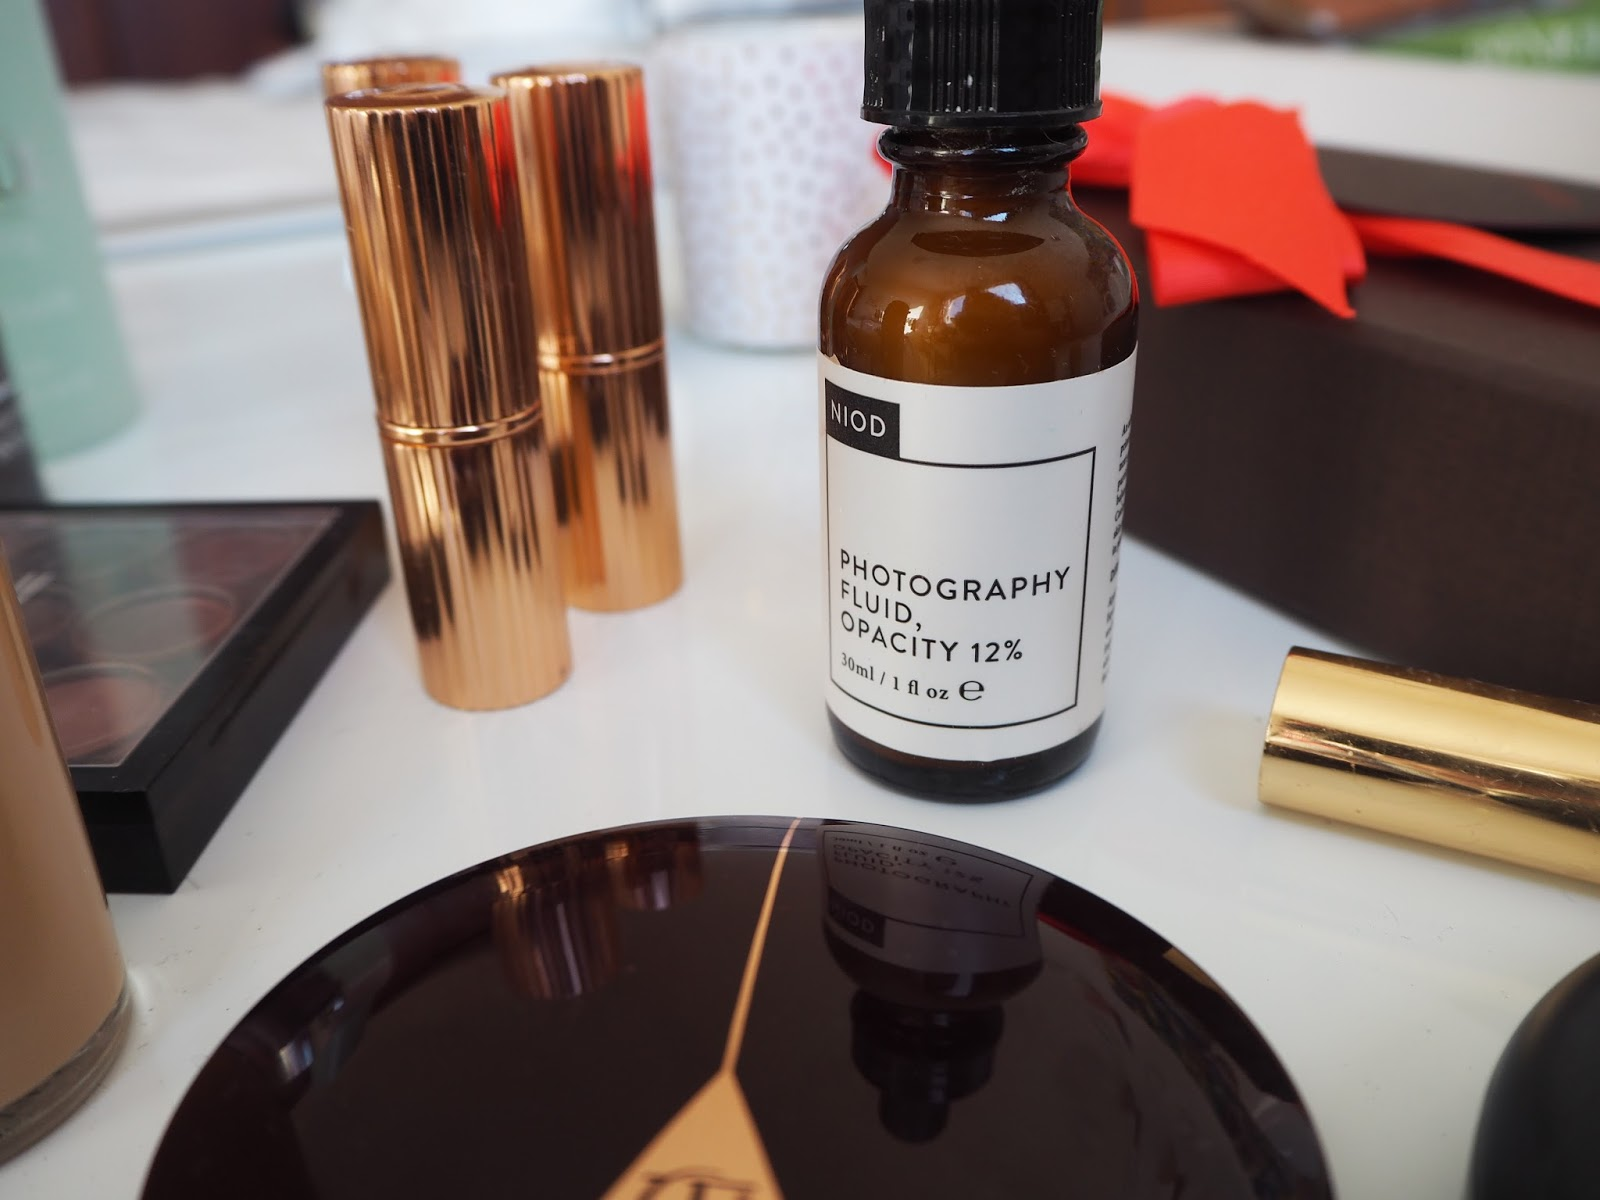 Niod Photography Fluid review